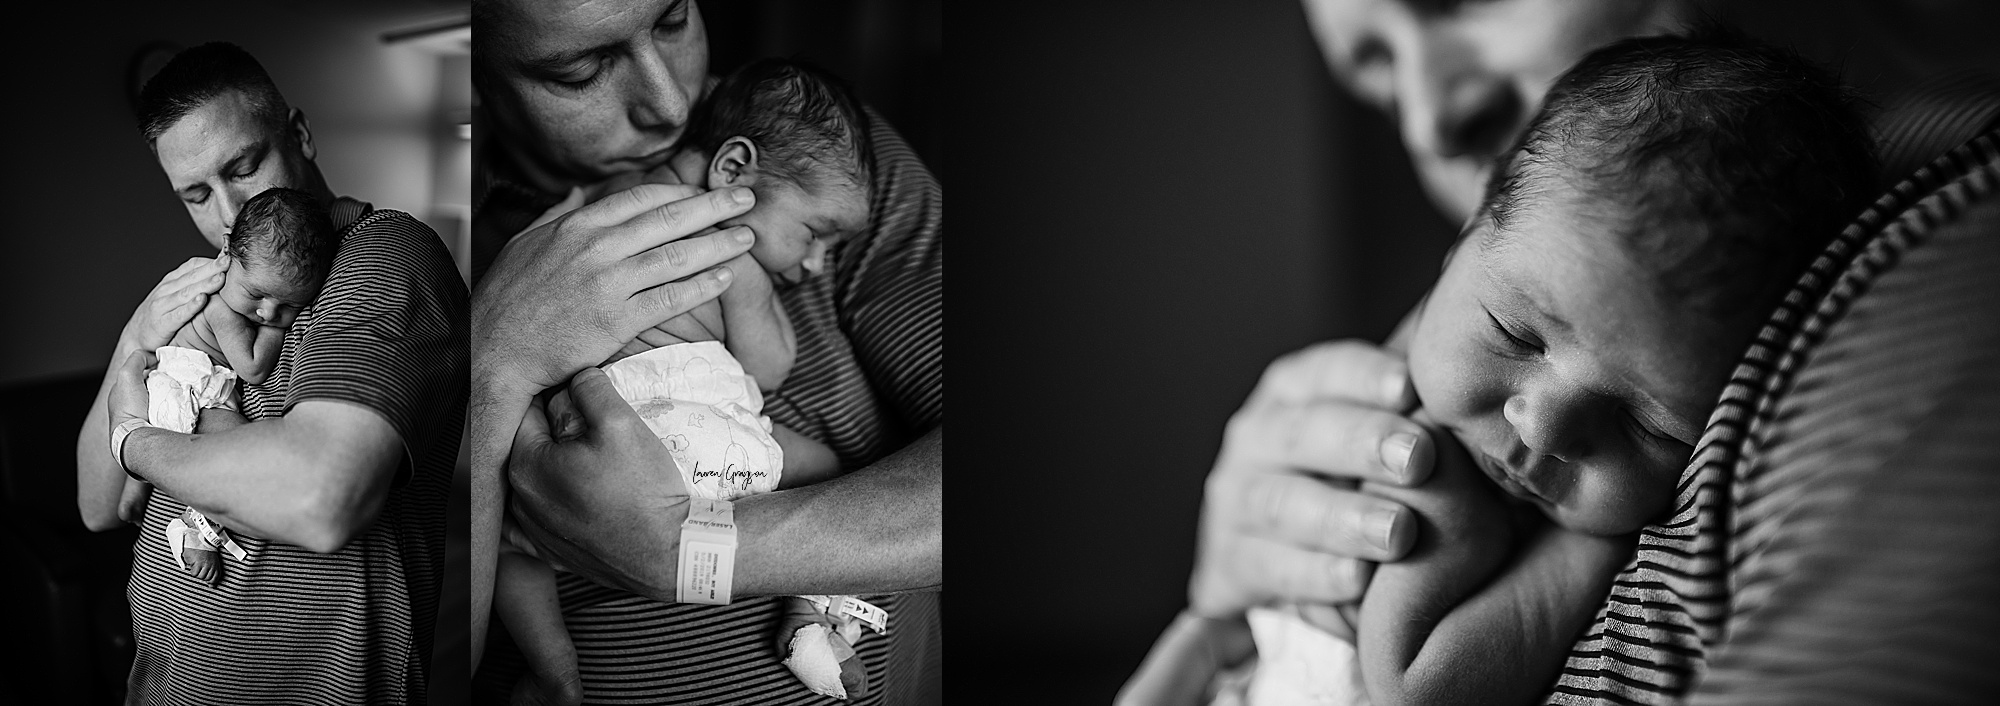 akron photographer, fresh 48 session, hospital newborn photos, dad holding baby